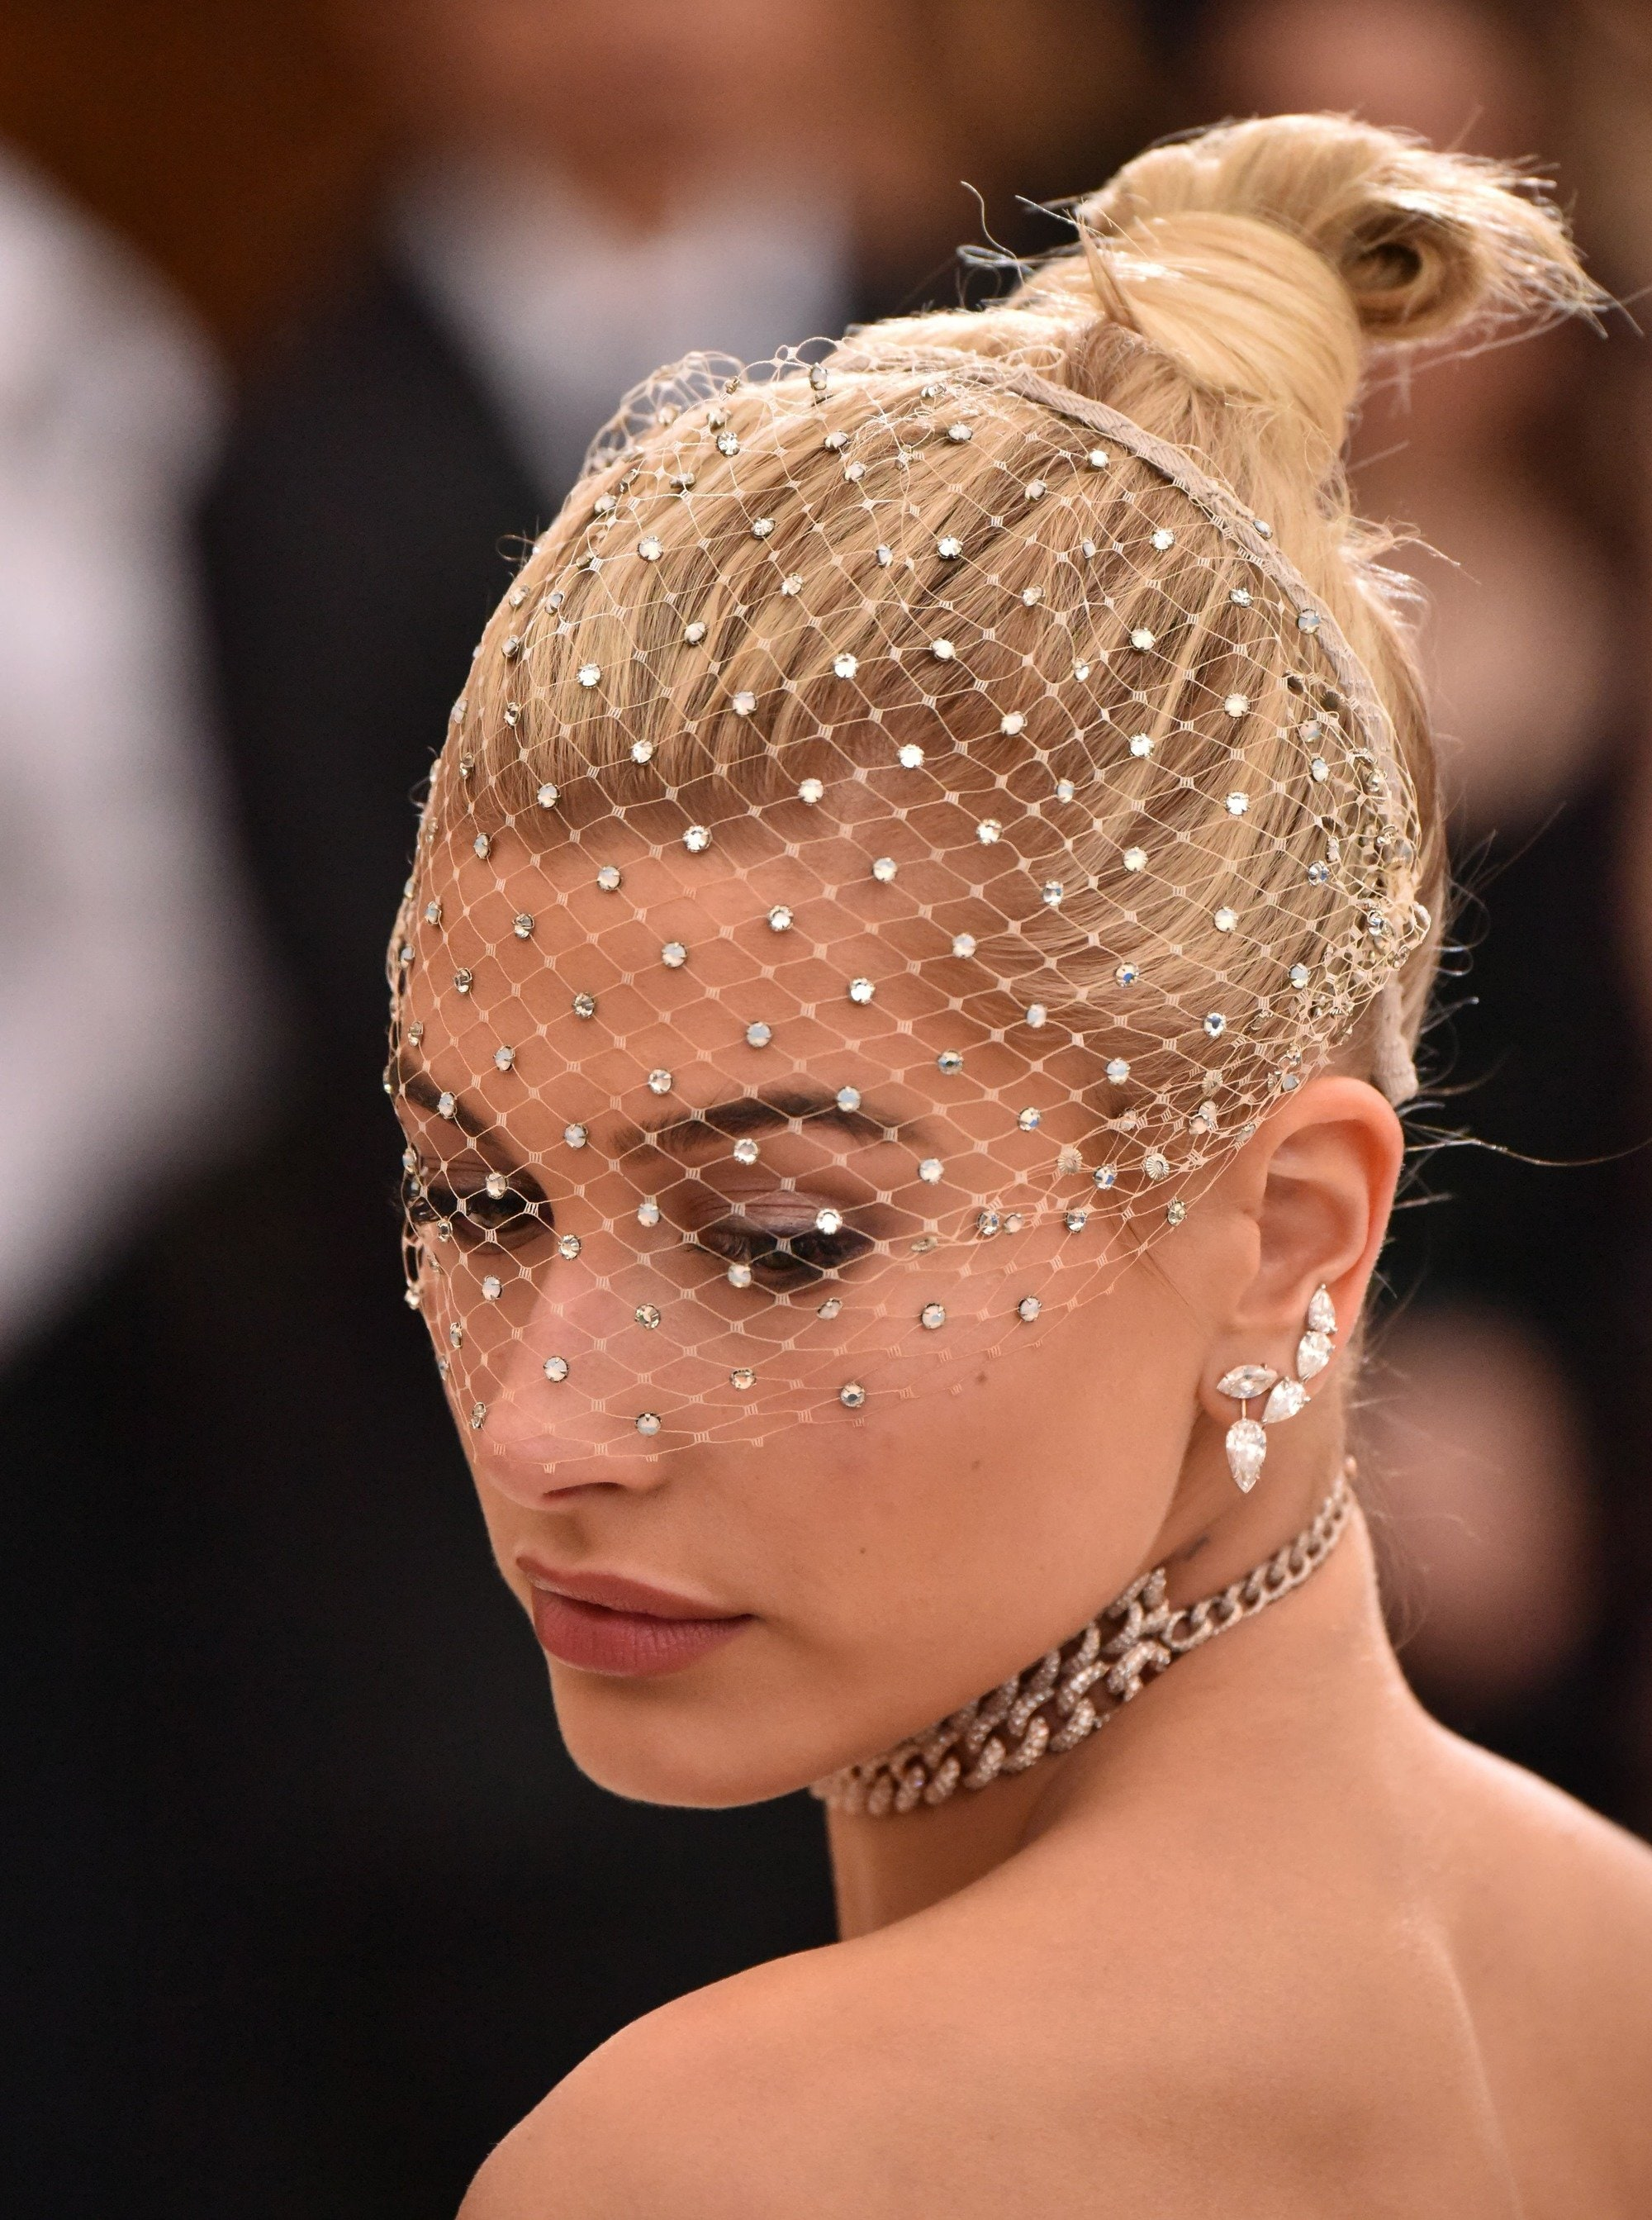 hailey baldwin on the met gala red carpet with hair net and top knot hairstyle